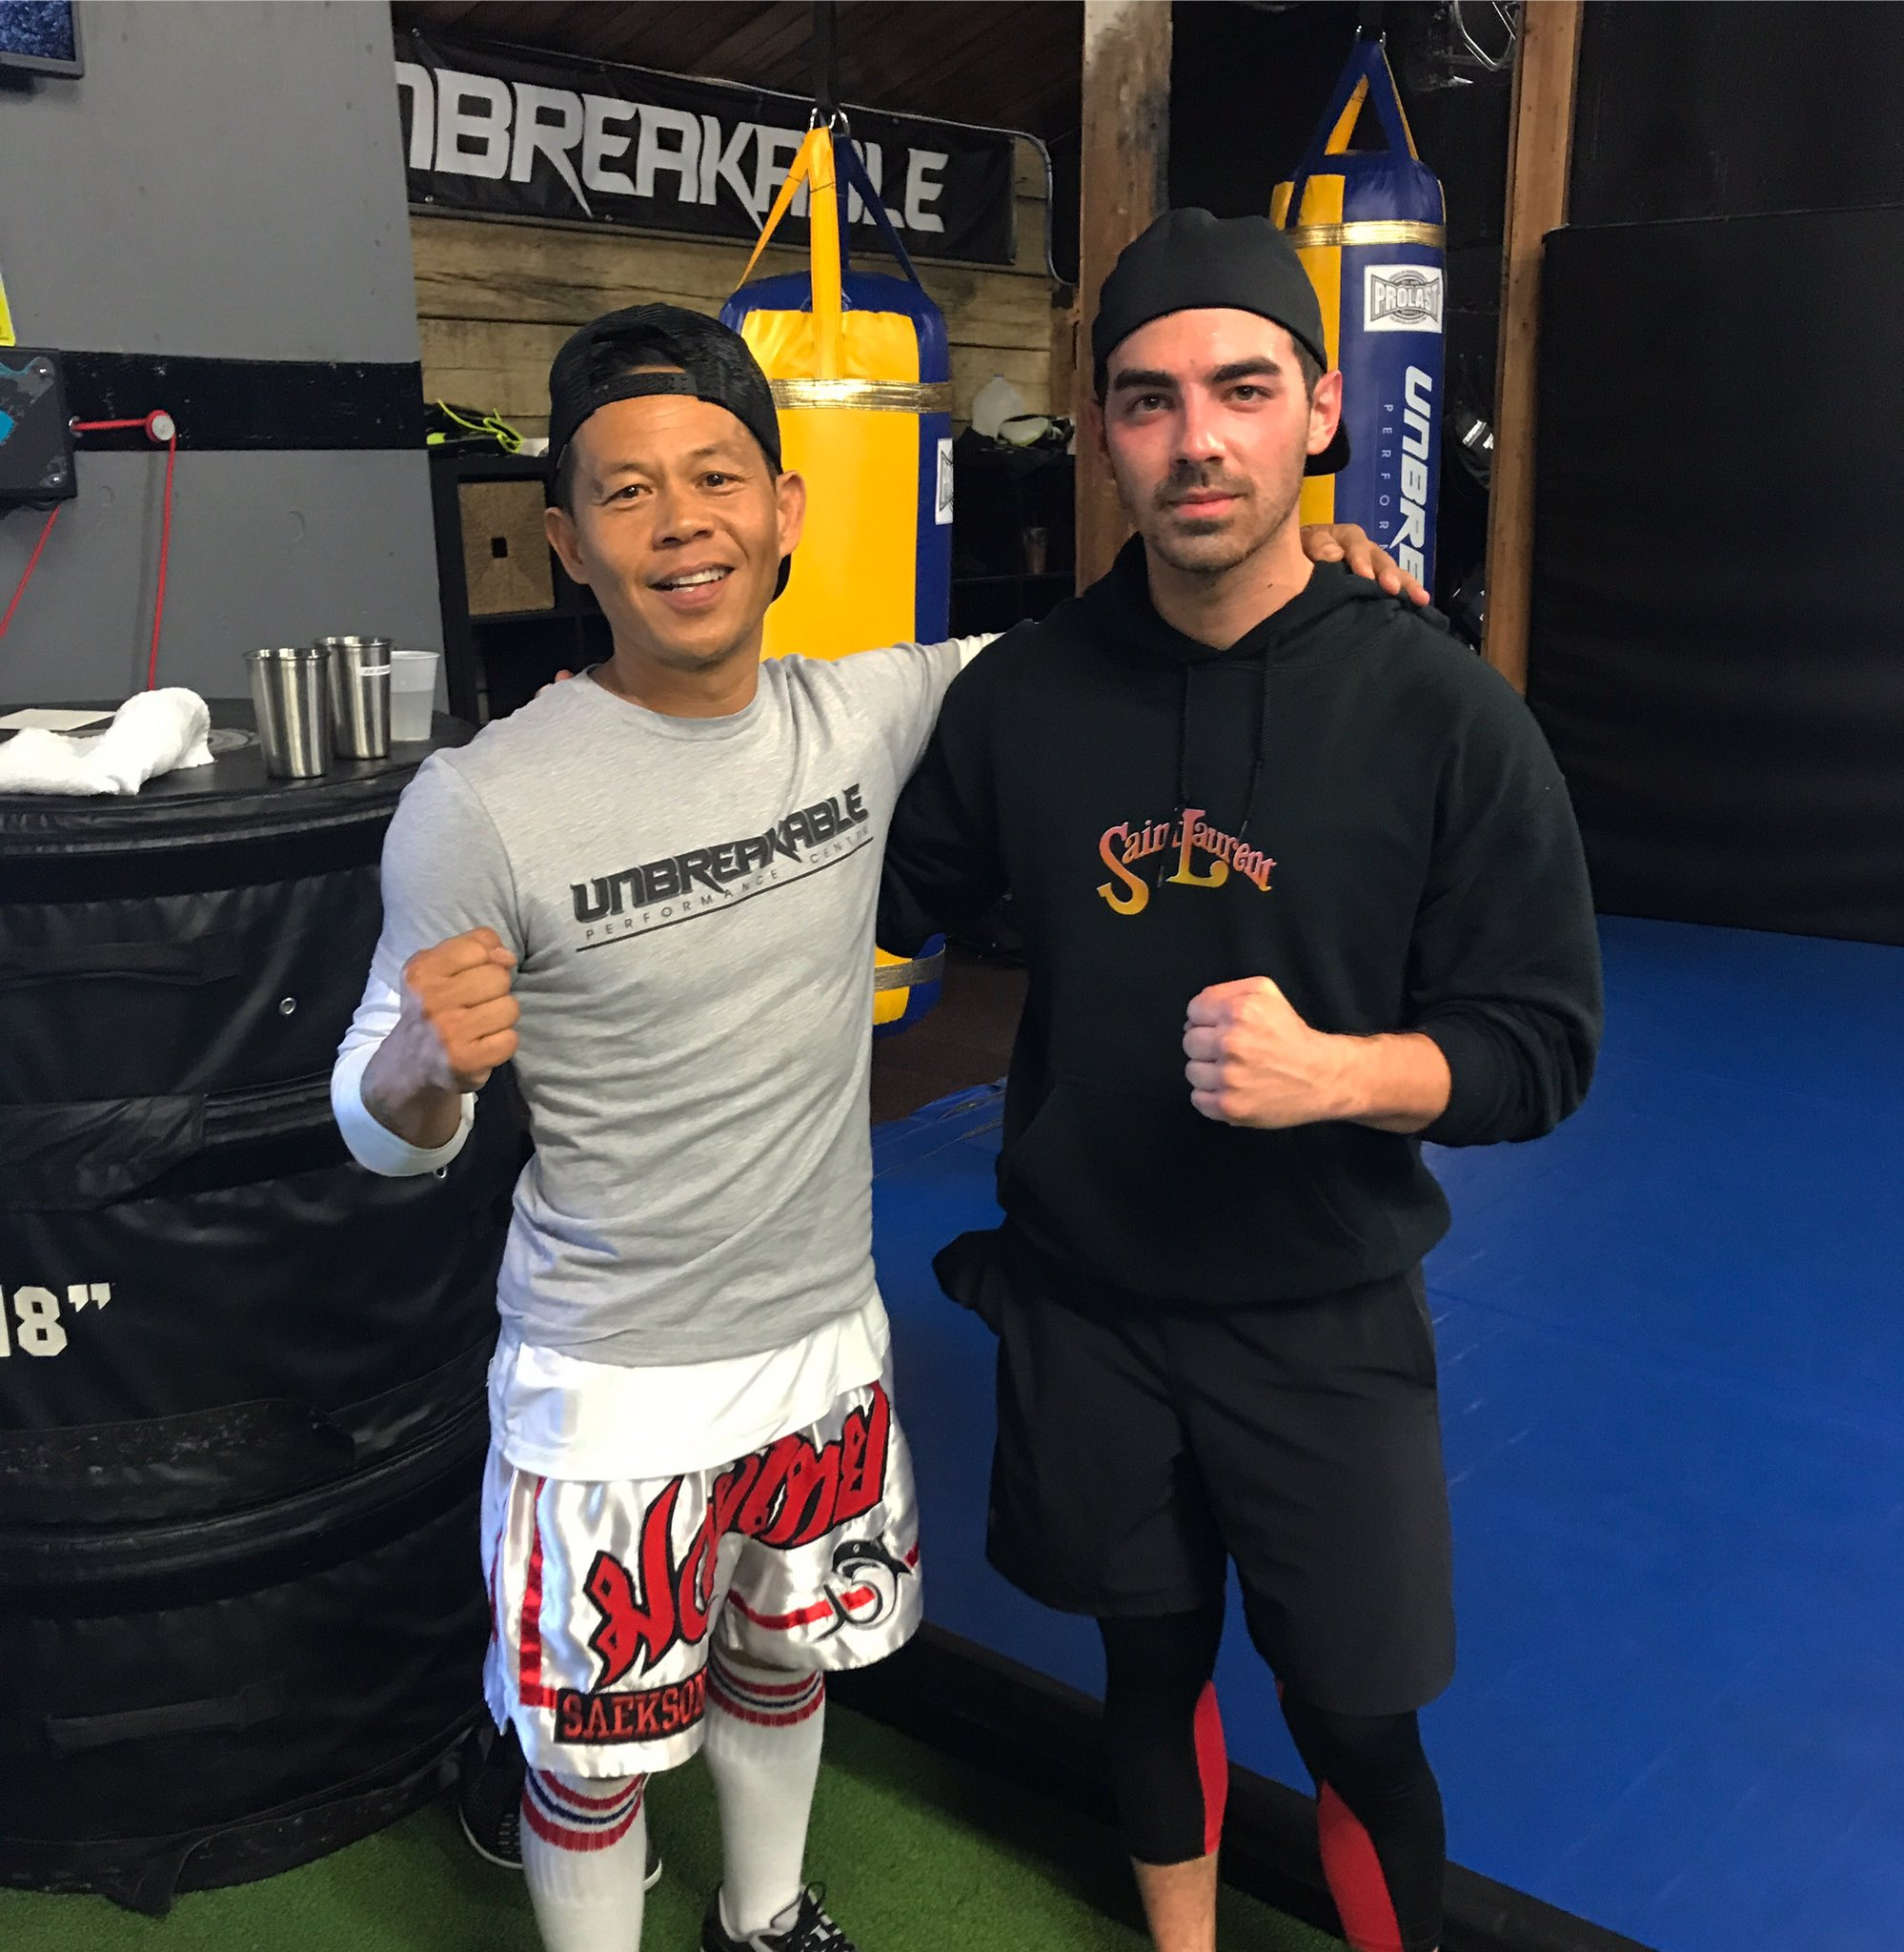 Putting in work with a legend today @erniereyesjr thanks bro! https://t.co/0h0cO6MMS2